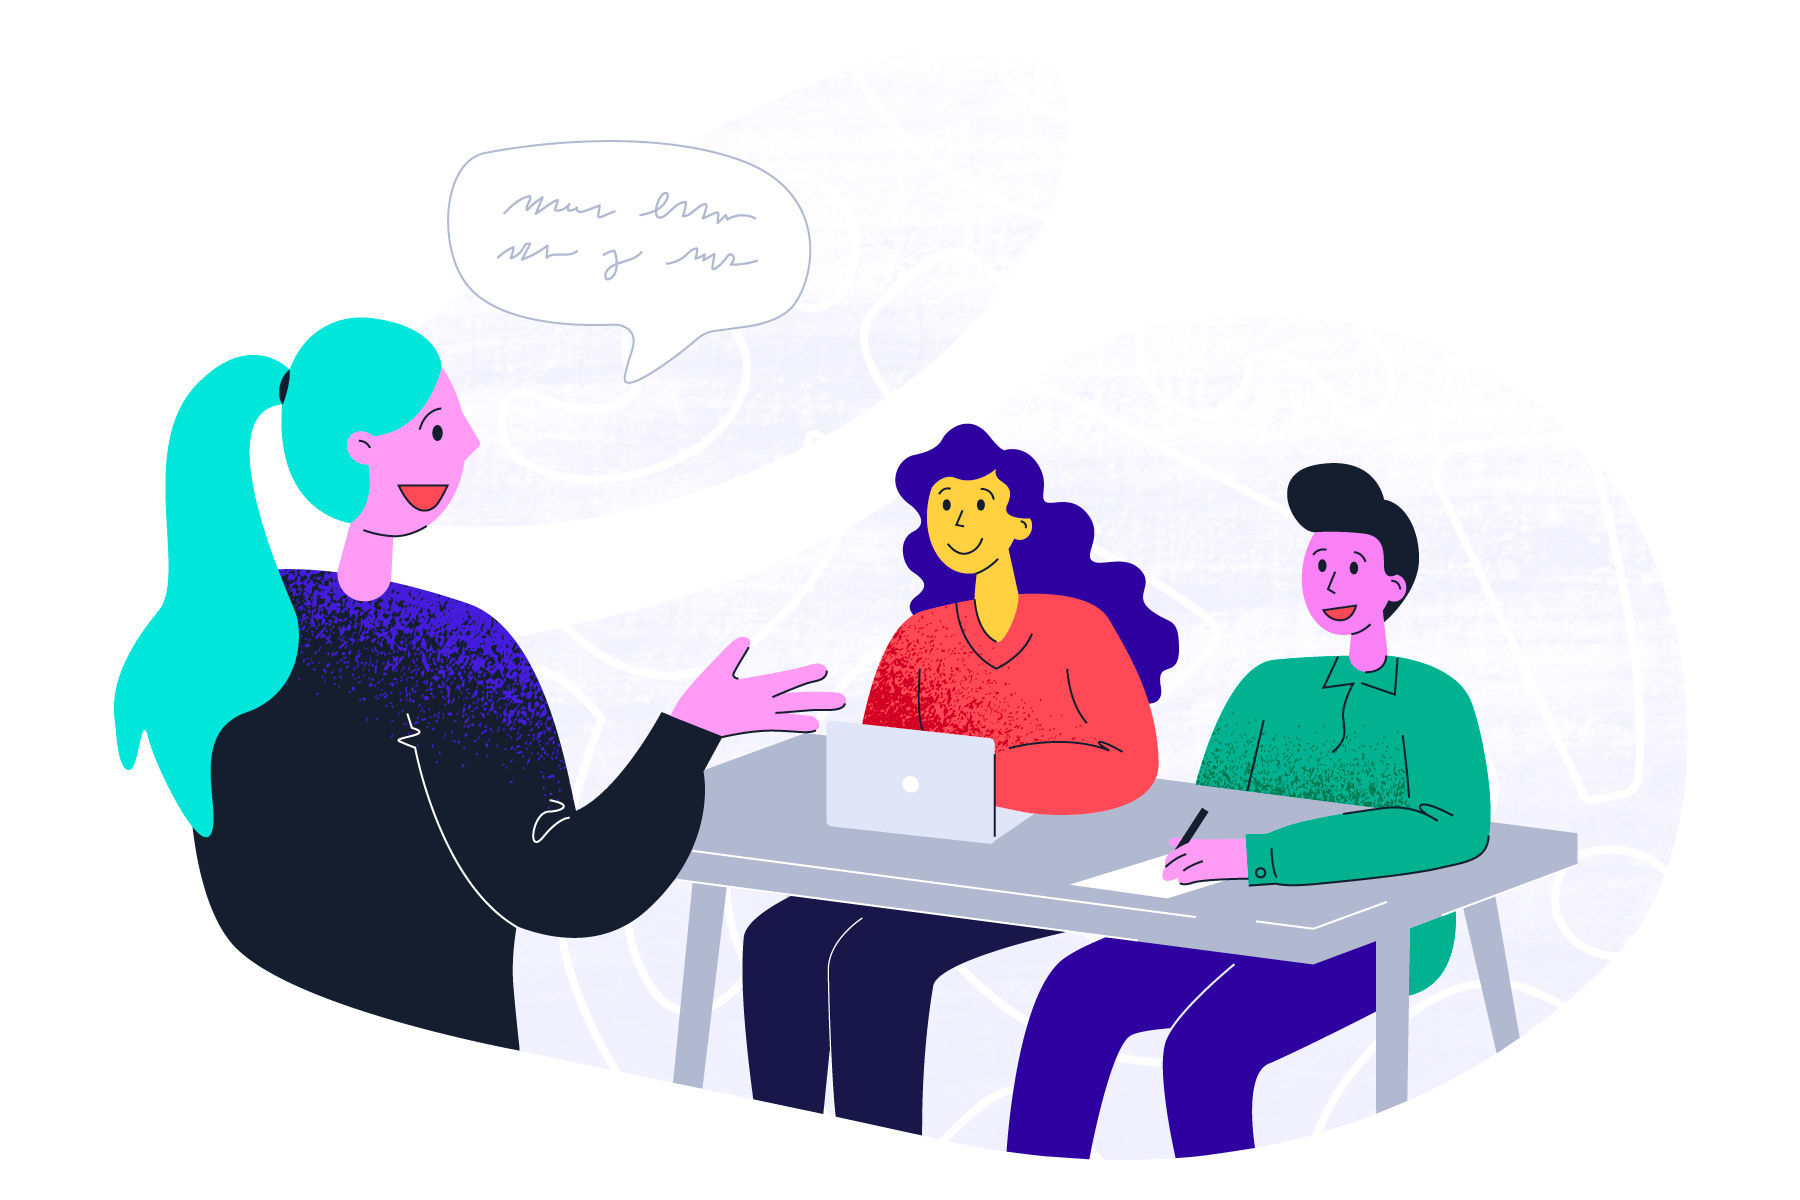 Abstract illustration of therapist on a video call